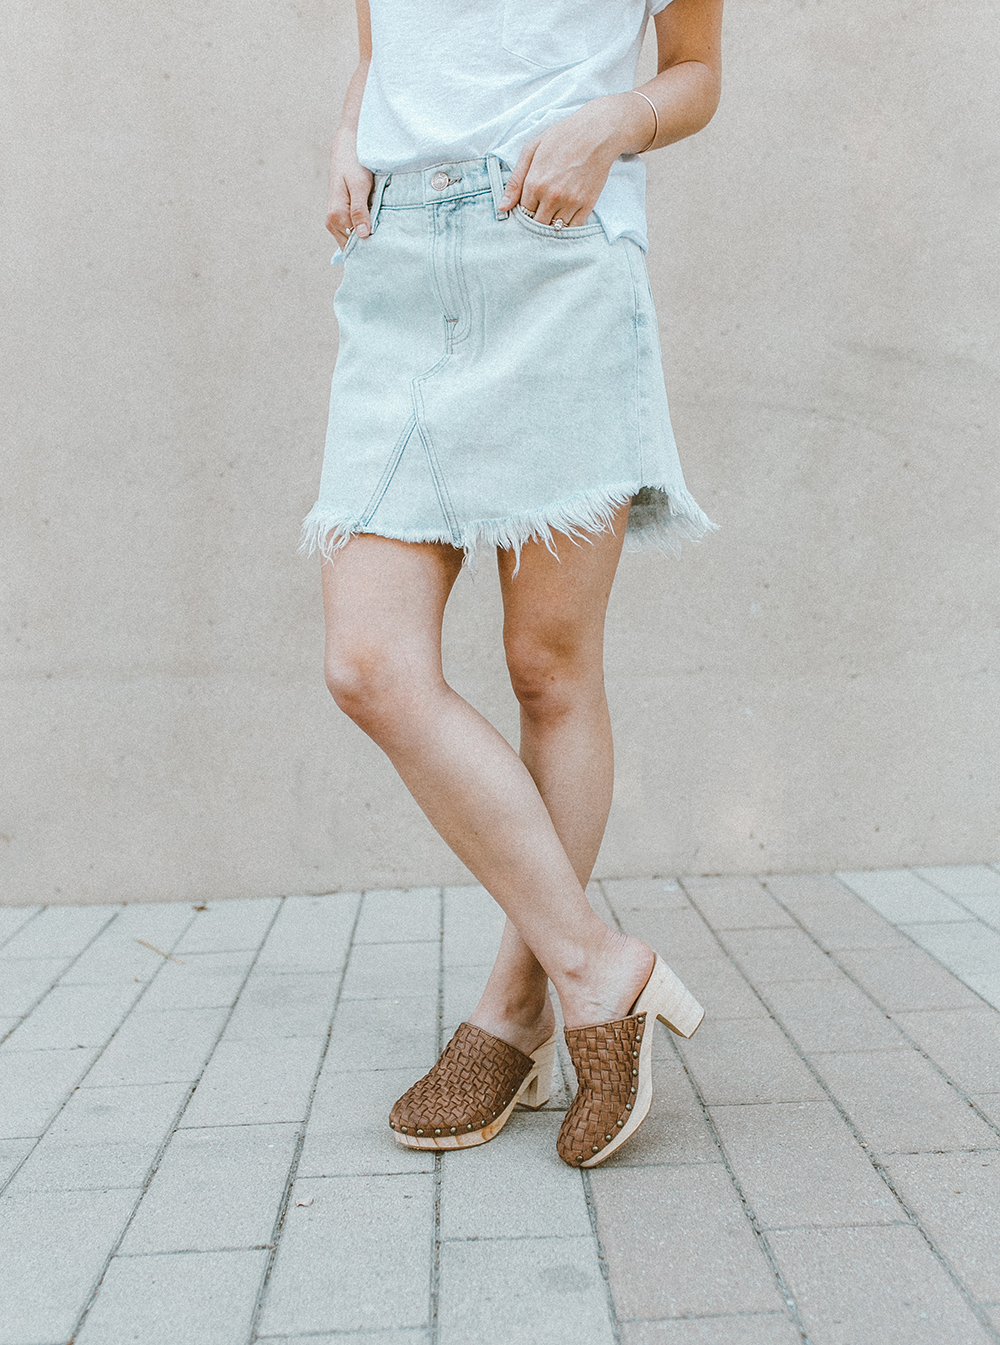 livvyland-blog-olivia-watson-trunk-club-spring-review-austin-texas-fashion-style-lifestyle-blogger-5